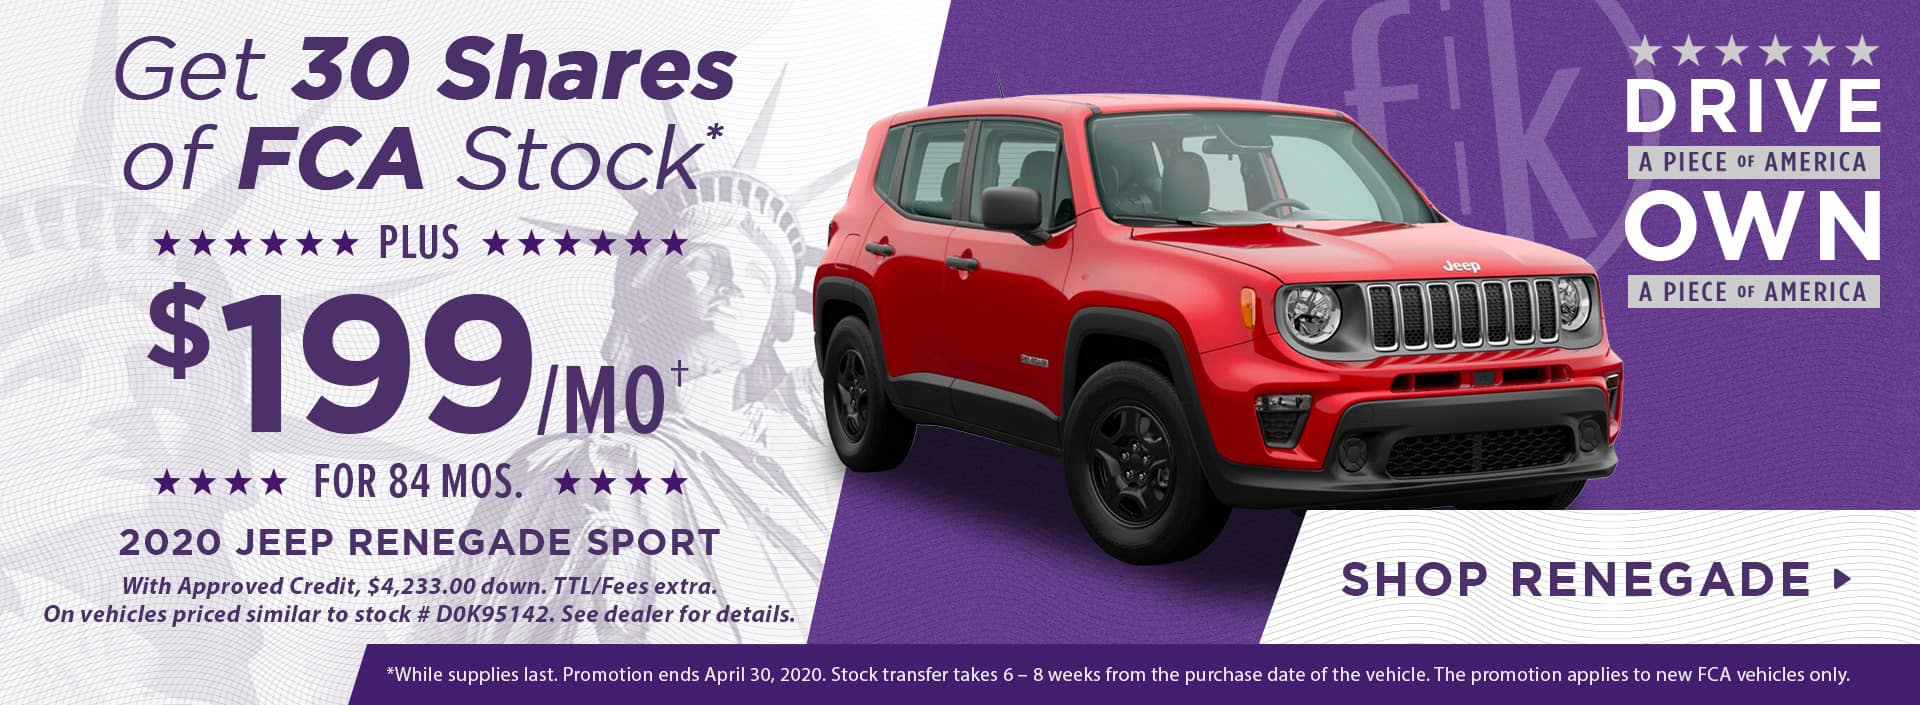 Get 30 Shares of FCA Stock PLUS $199/mo for 84 mos. 2020 Jeep Renegade Sport